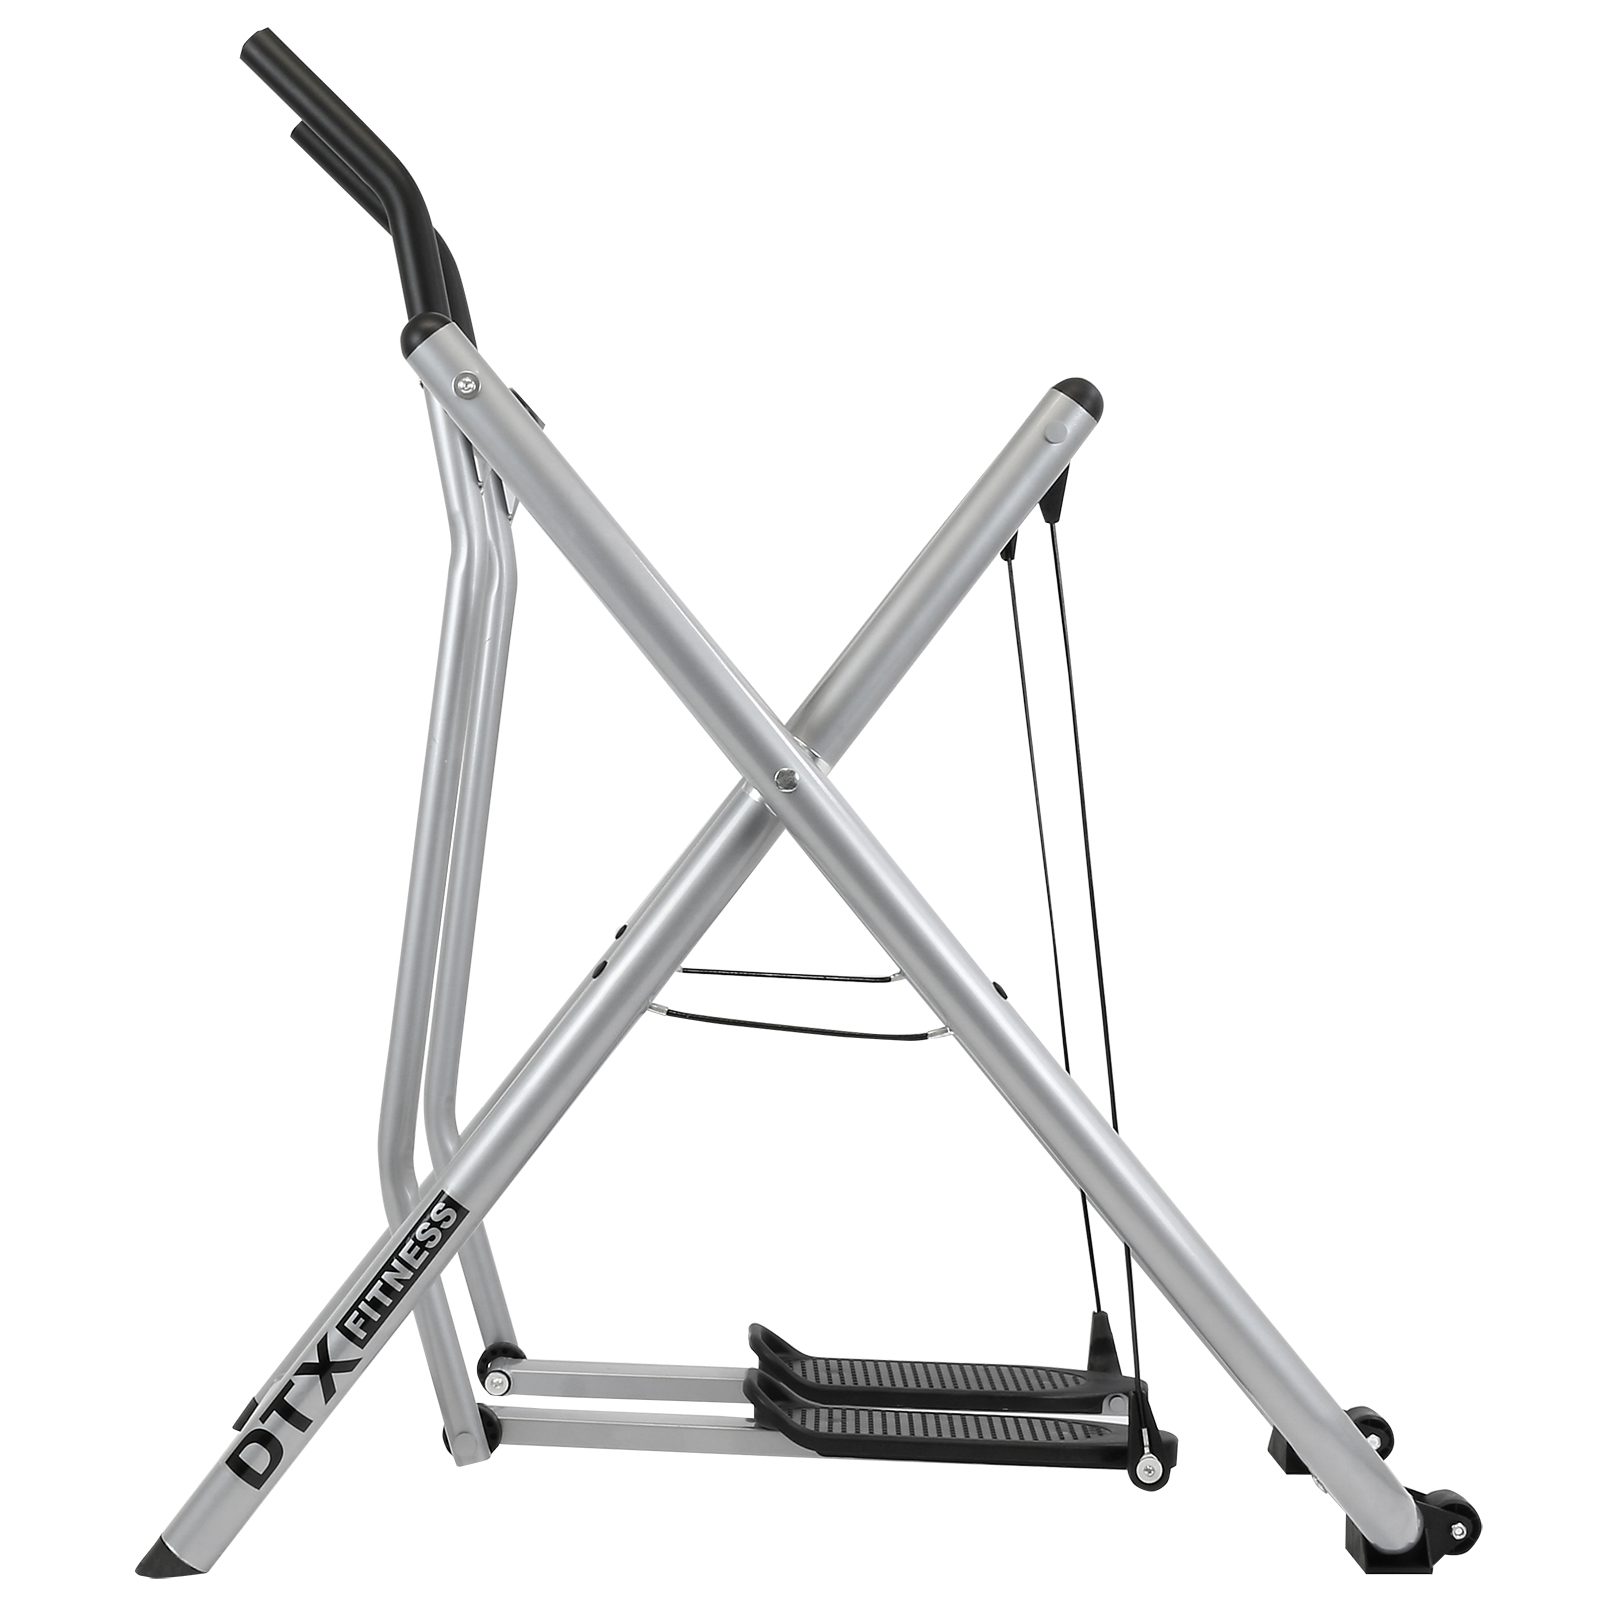 Dtx Fitness Air Walker Exercise Machine Gym Cross Trainer